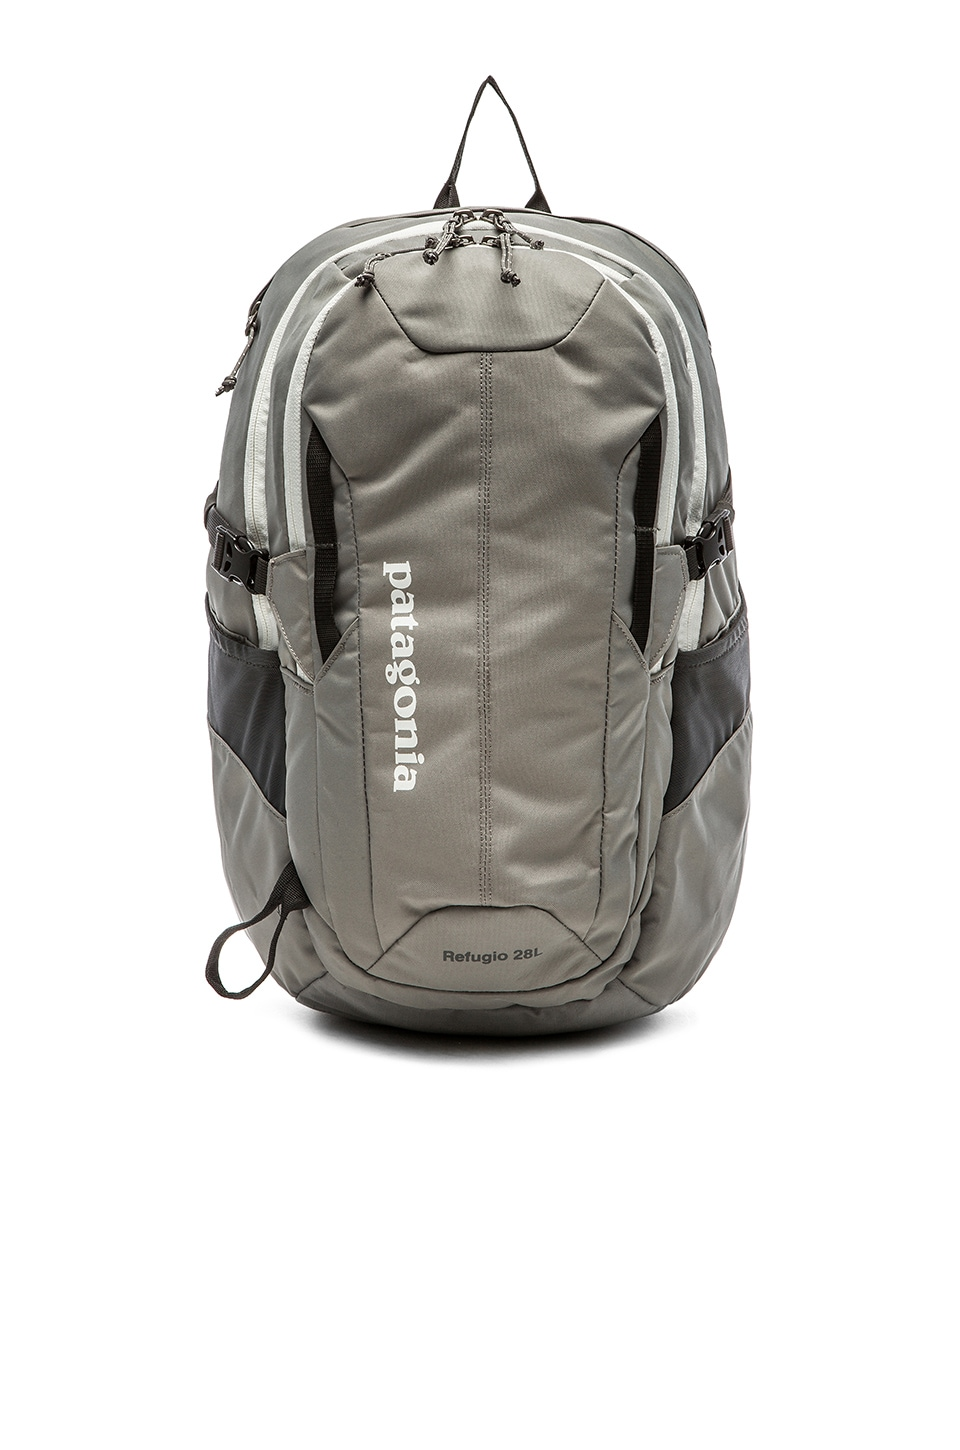 Patagonia Refugio 28L Backpack in Feather Grey